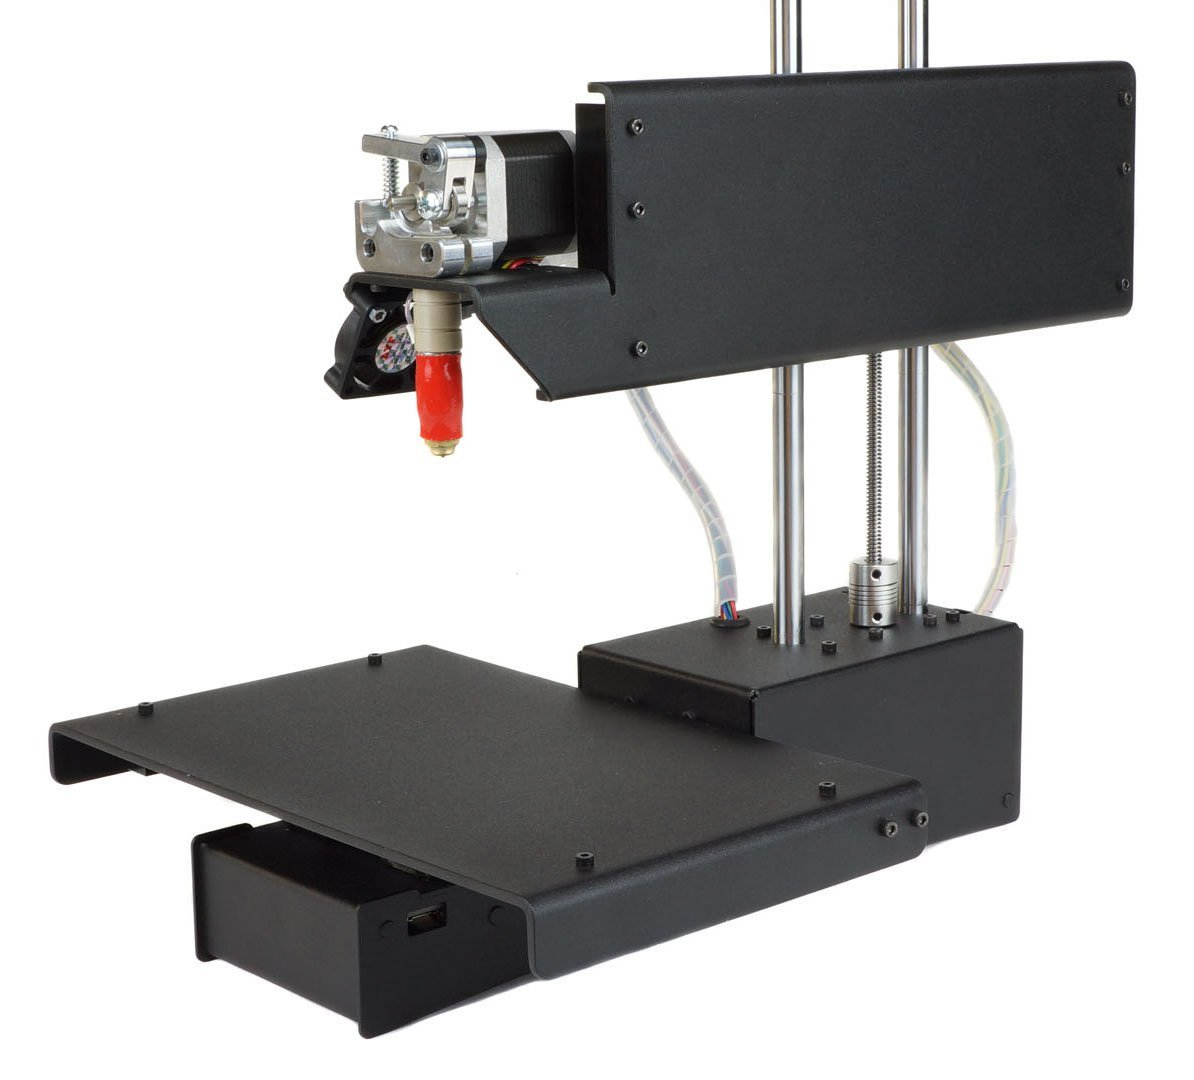 3D Printer Printrbot Simple Metal